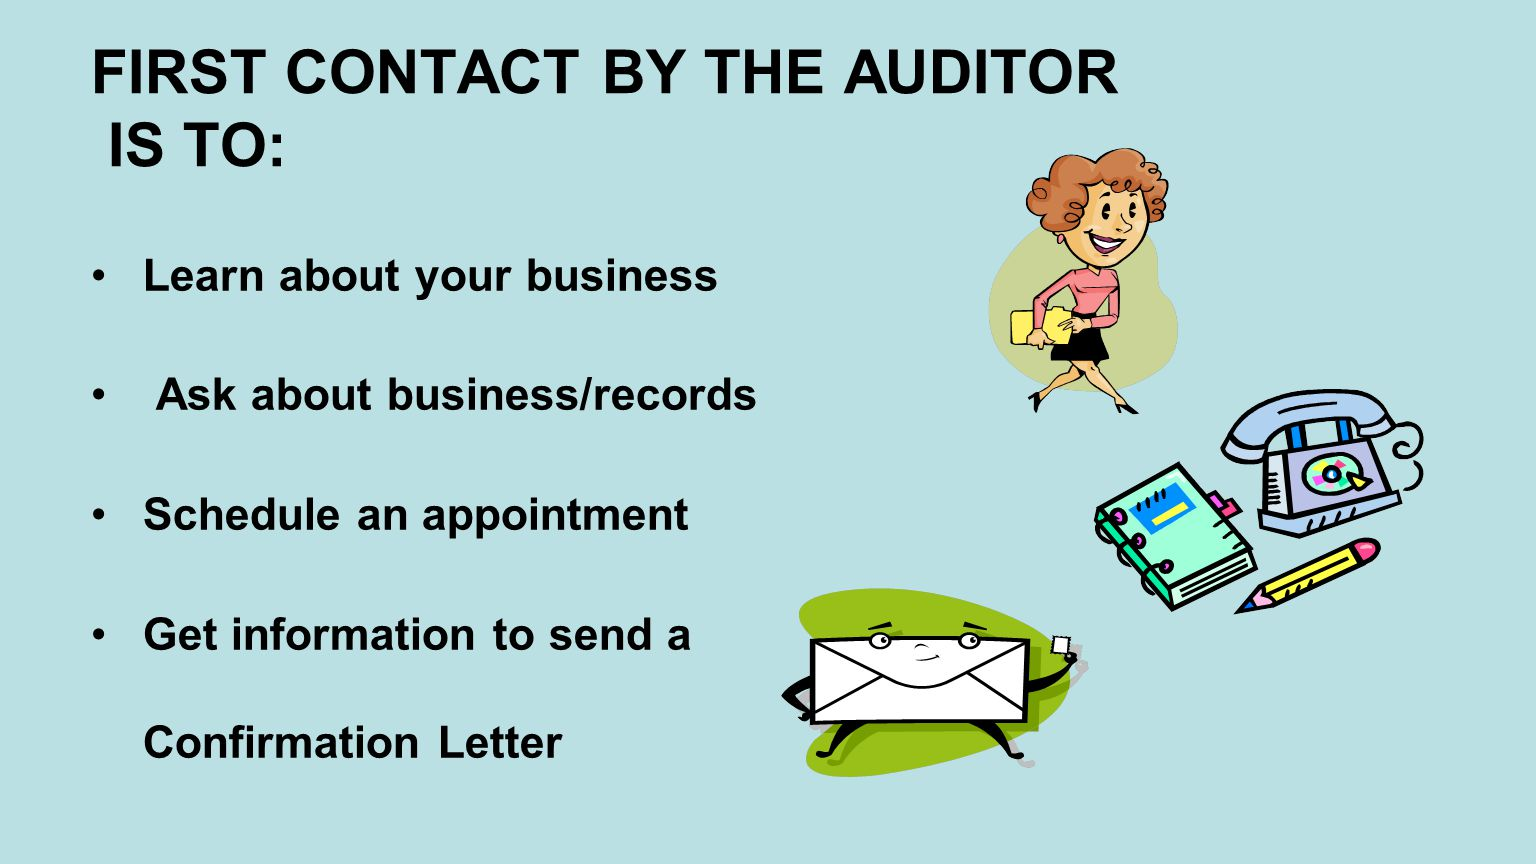 RECORDS NEEDED FOR THE AUDIT For sales and use tax : Copies of previously filed sales/use tax returns and supporting paperwork General ledgers/chart of accounts Sales journals or registers Sales invoices Resale certificates, exemption letters, shipping docs to support exemptions Federal Income Tax returns